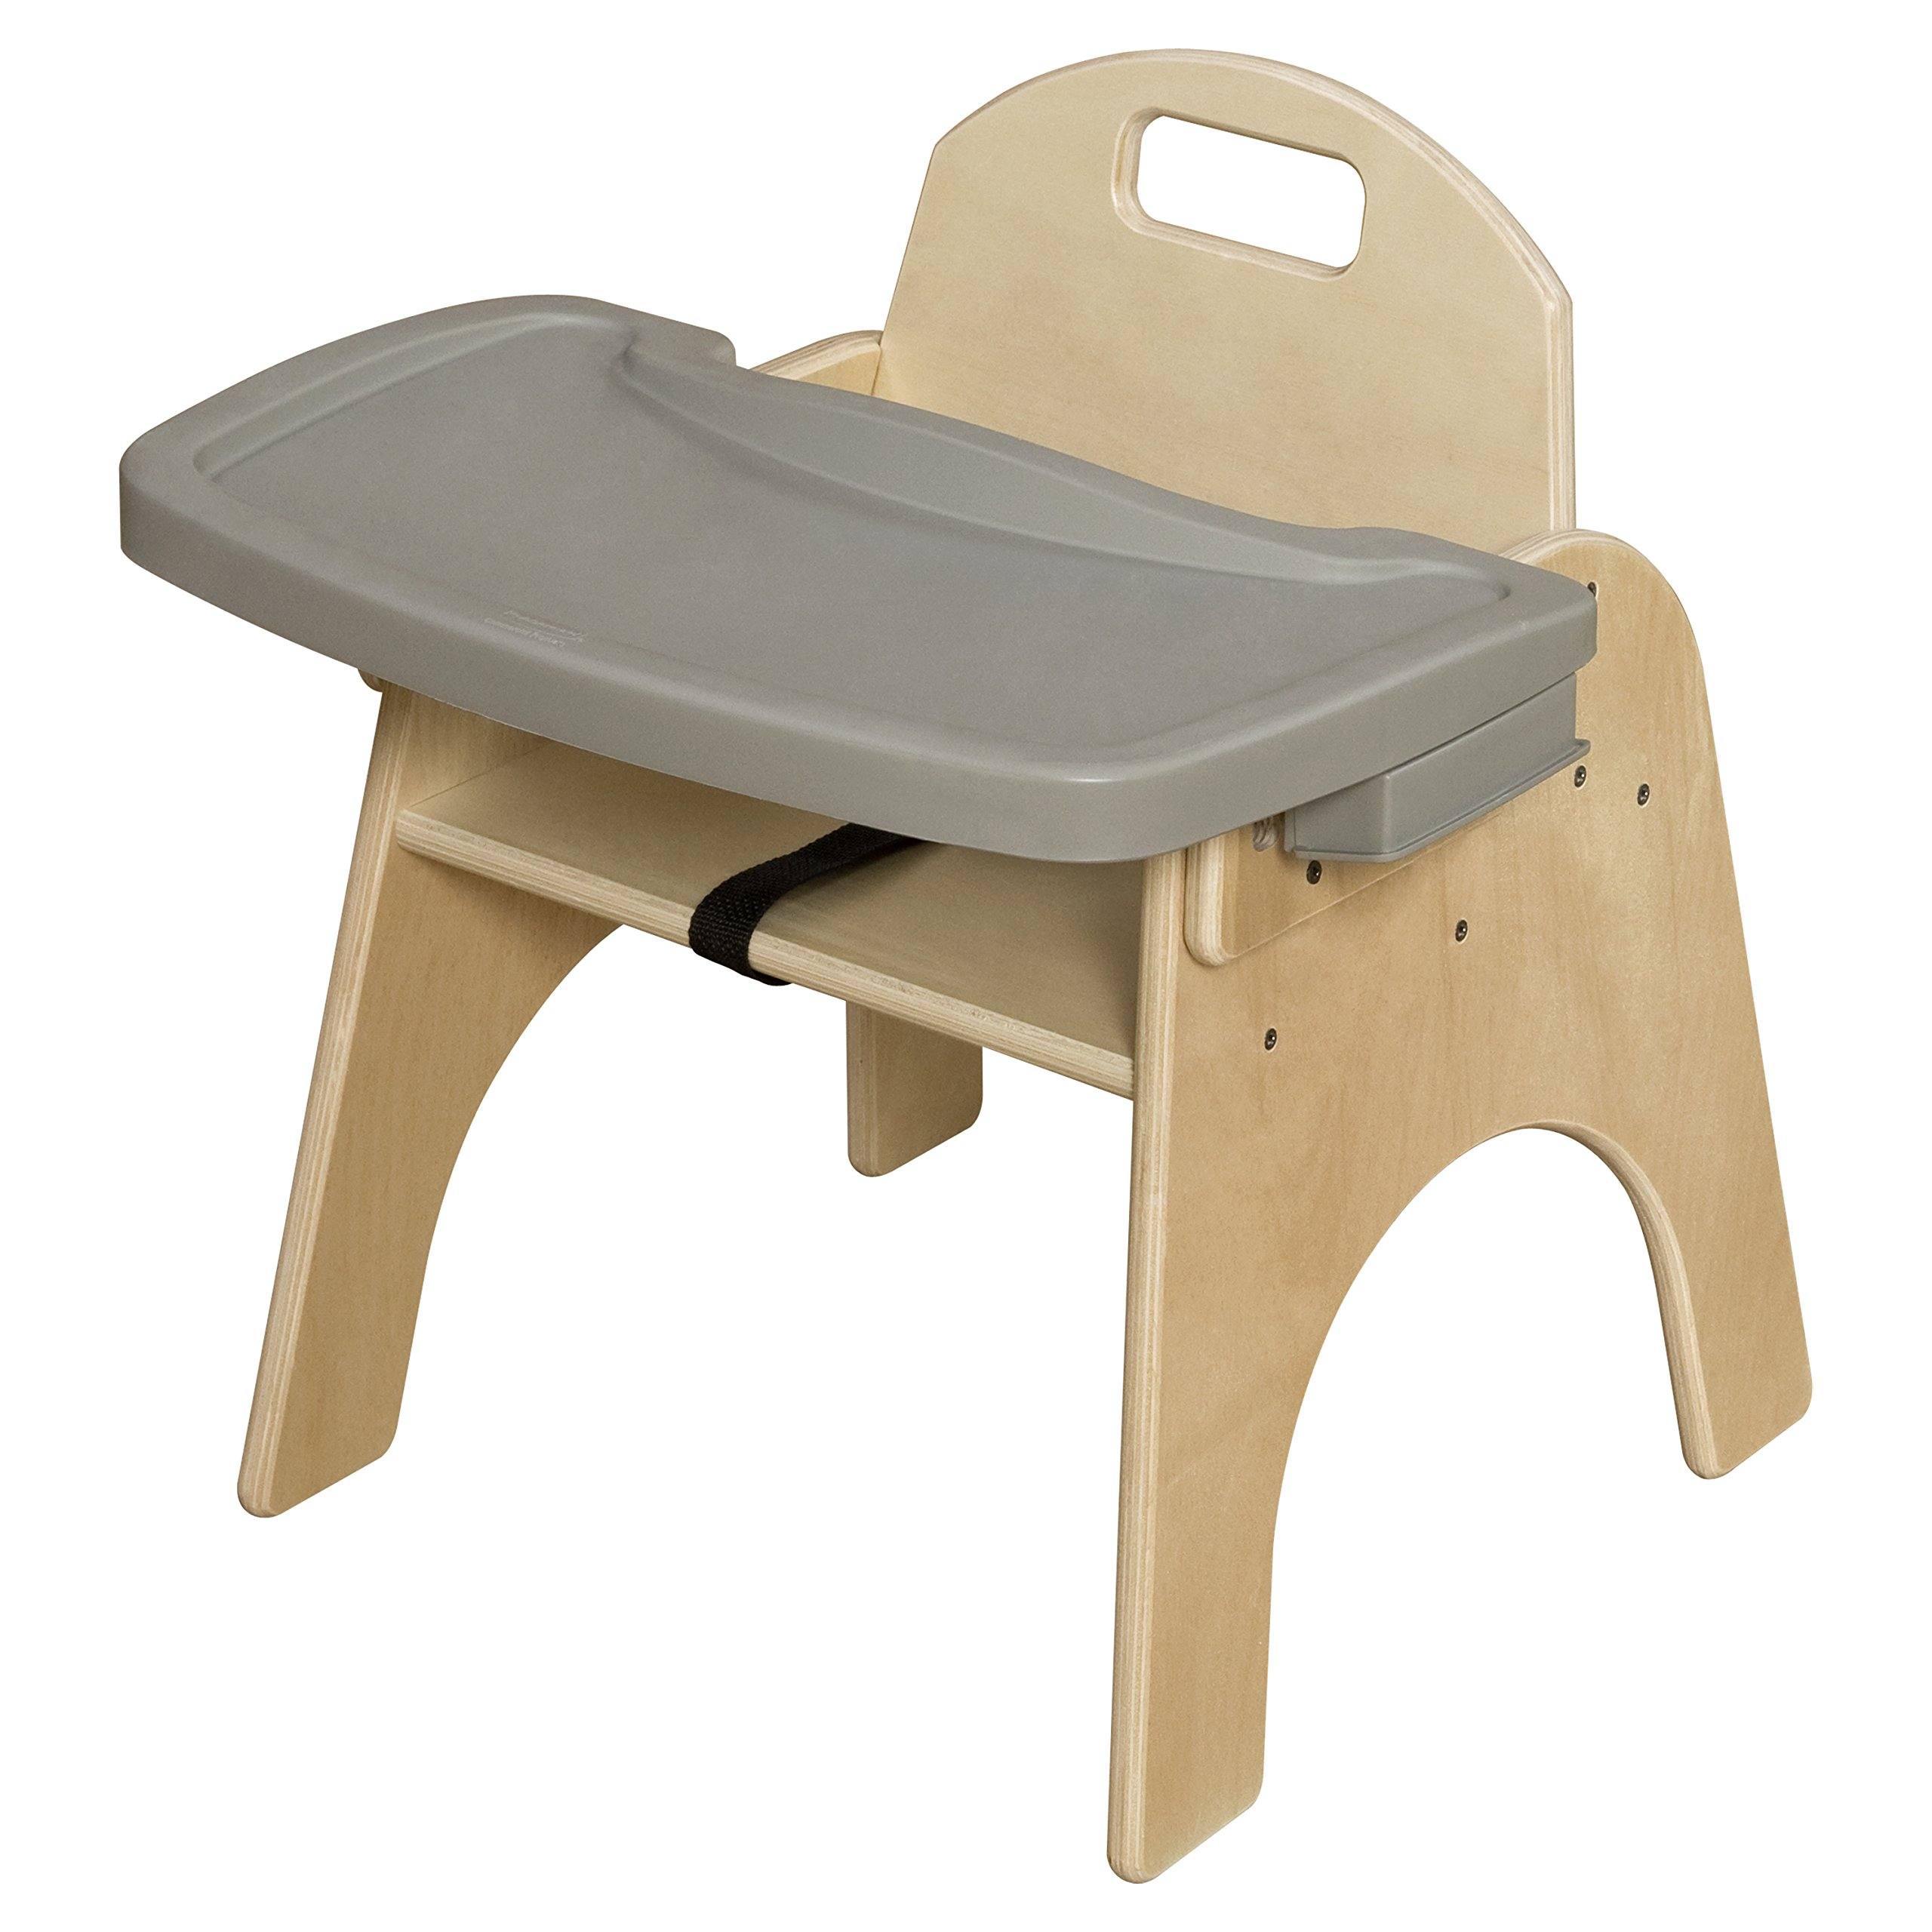 Wood Designs Stackable Woodie Kids Chair with Adjustable Tray, 11'' High Seat by Wood Designs (Image #1)